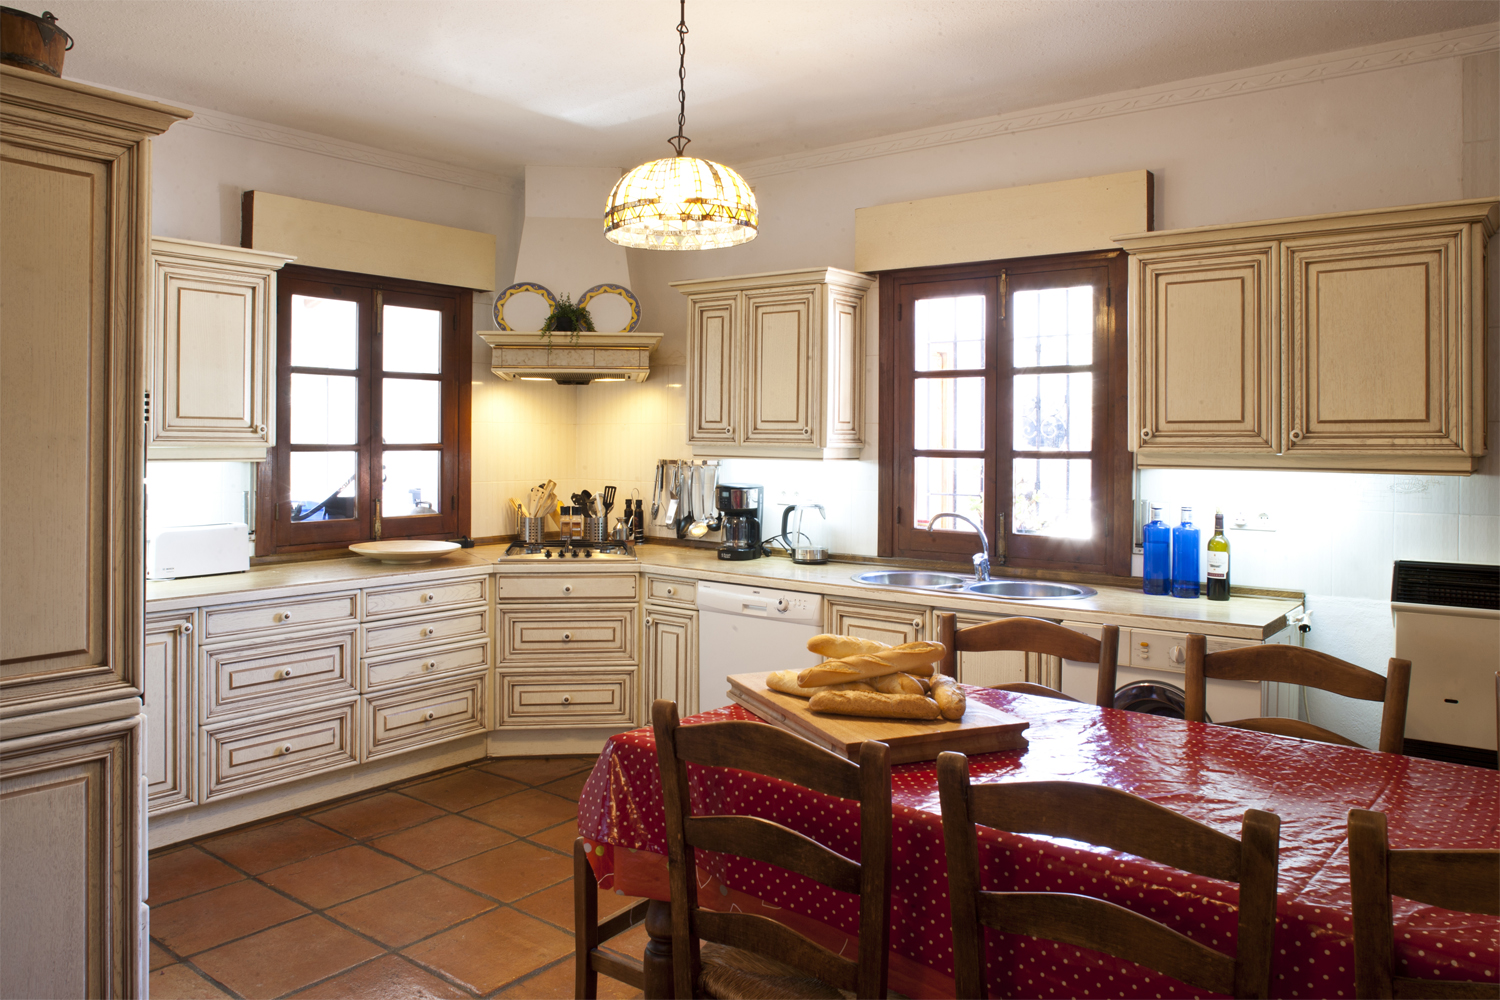 holiday villa spain kitchen